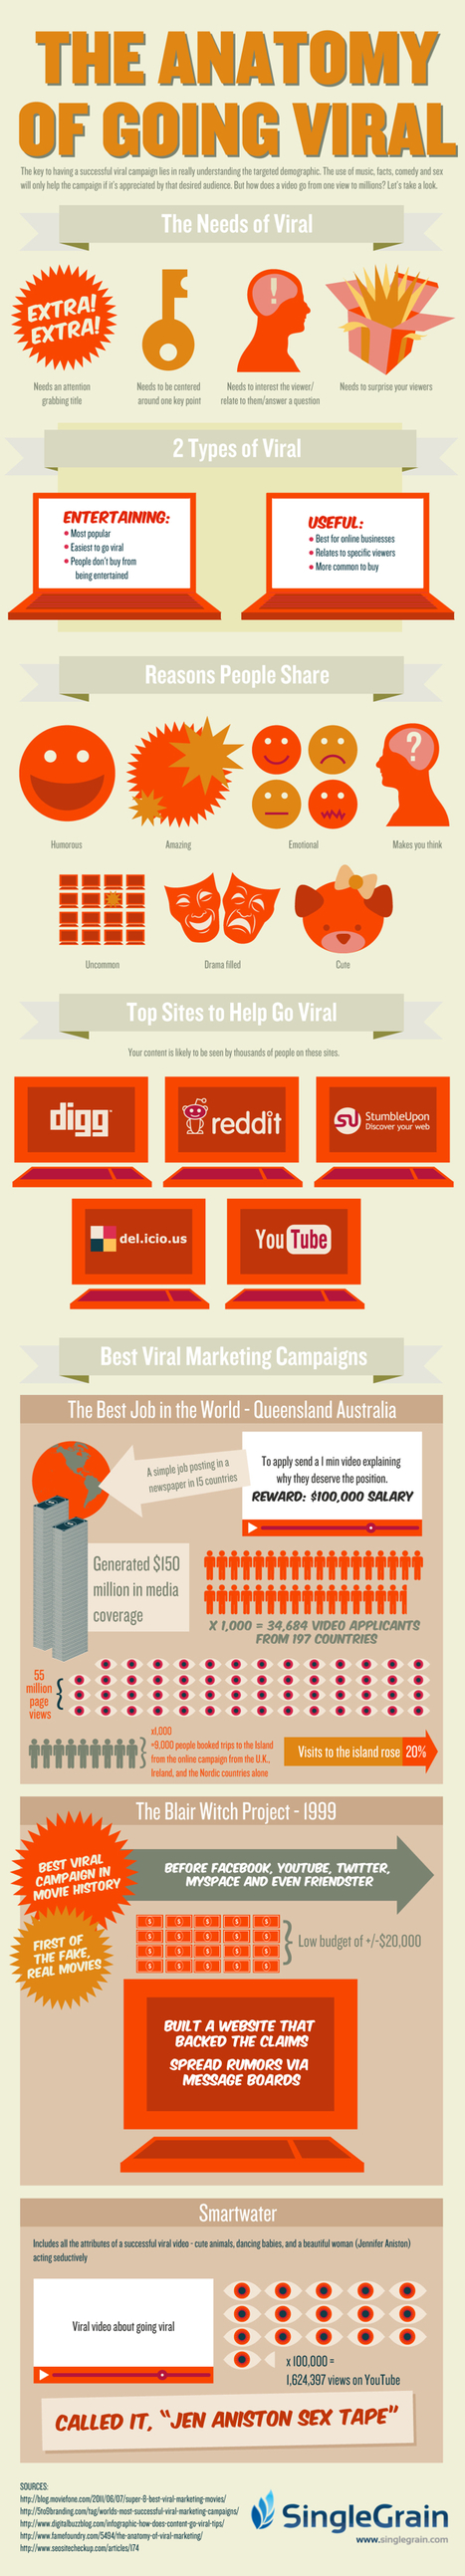 The Anatomy of Going Viral [Infographic] | MarketingHits | Scoop.it